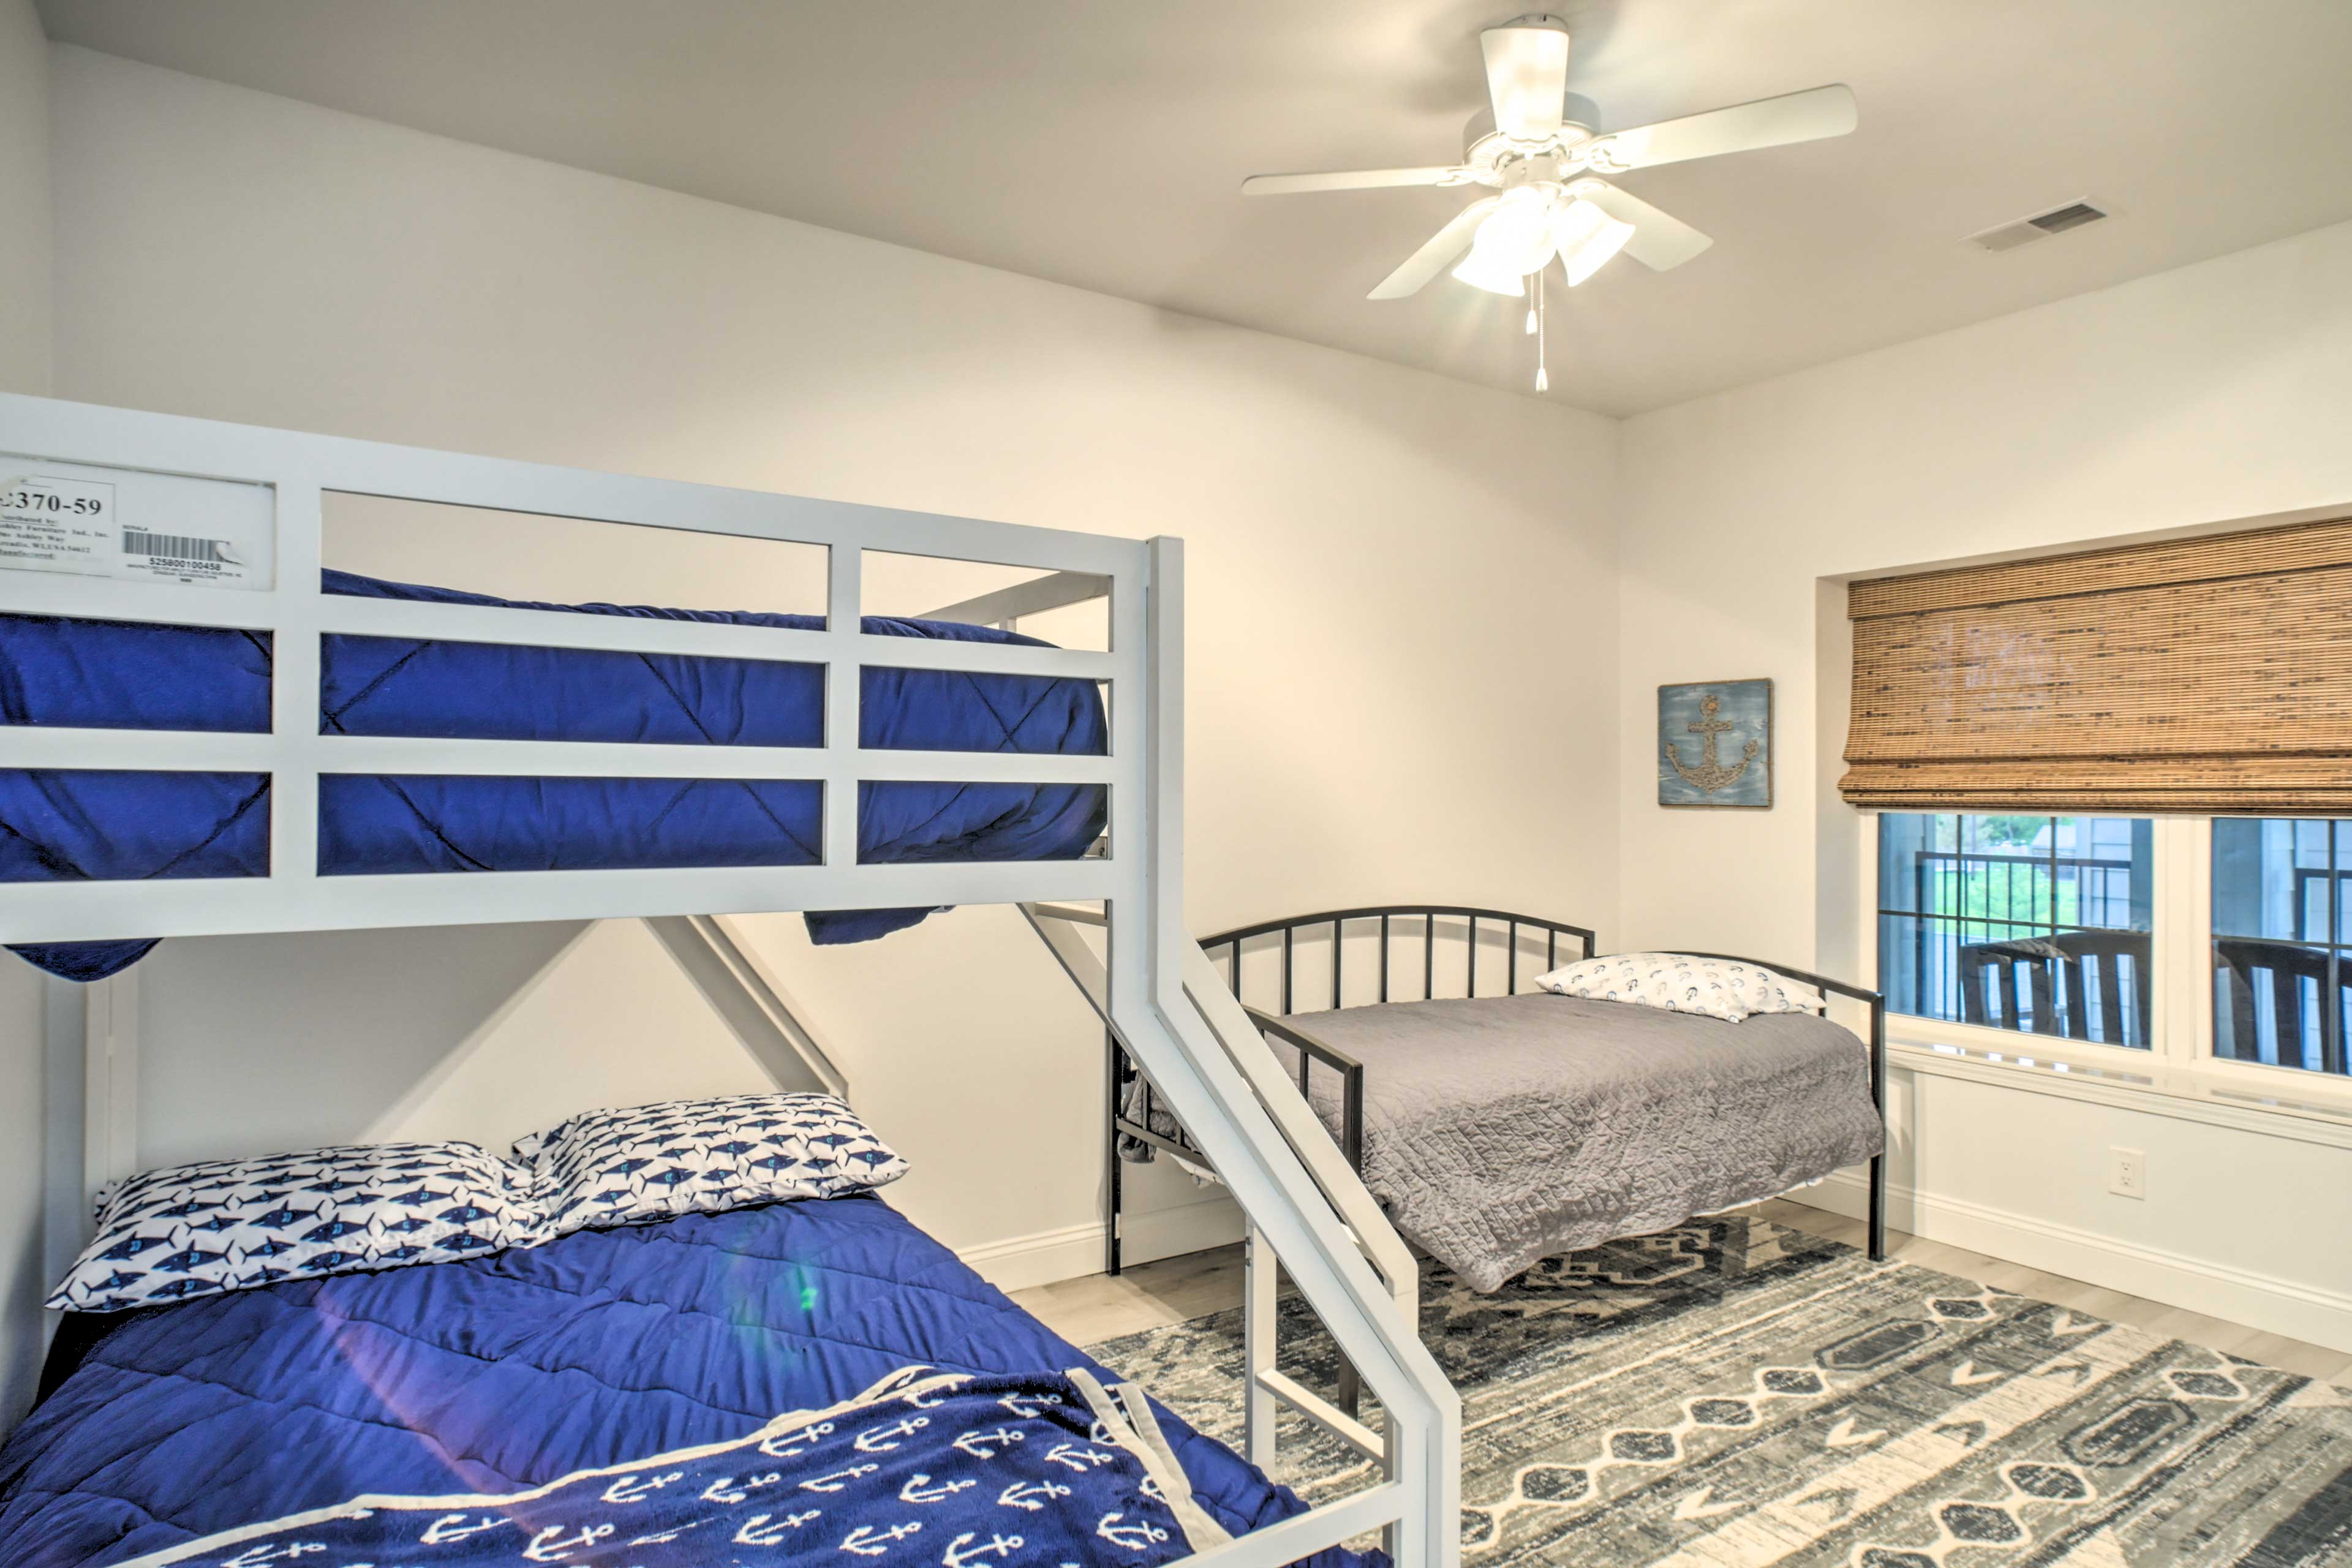 The third bedroom features a twin/full bunk bed and twin bed.